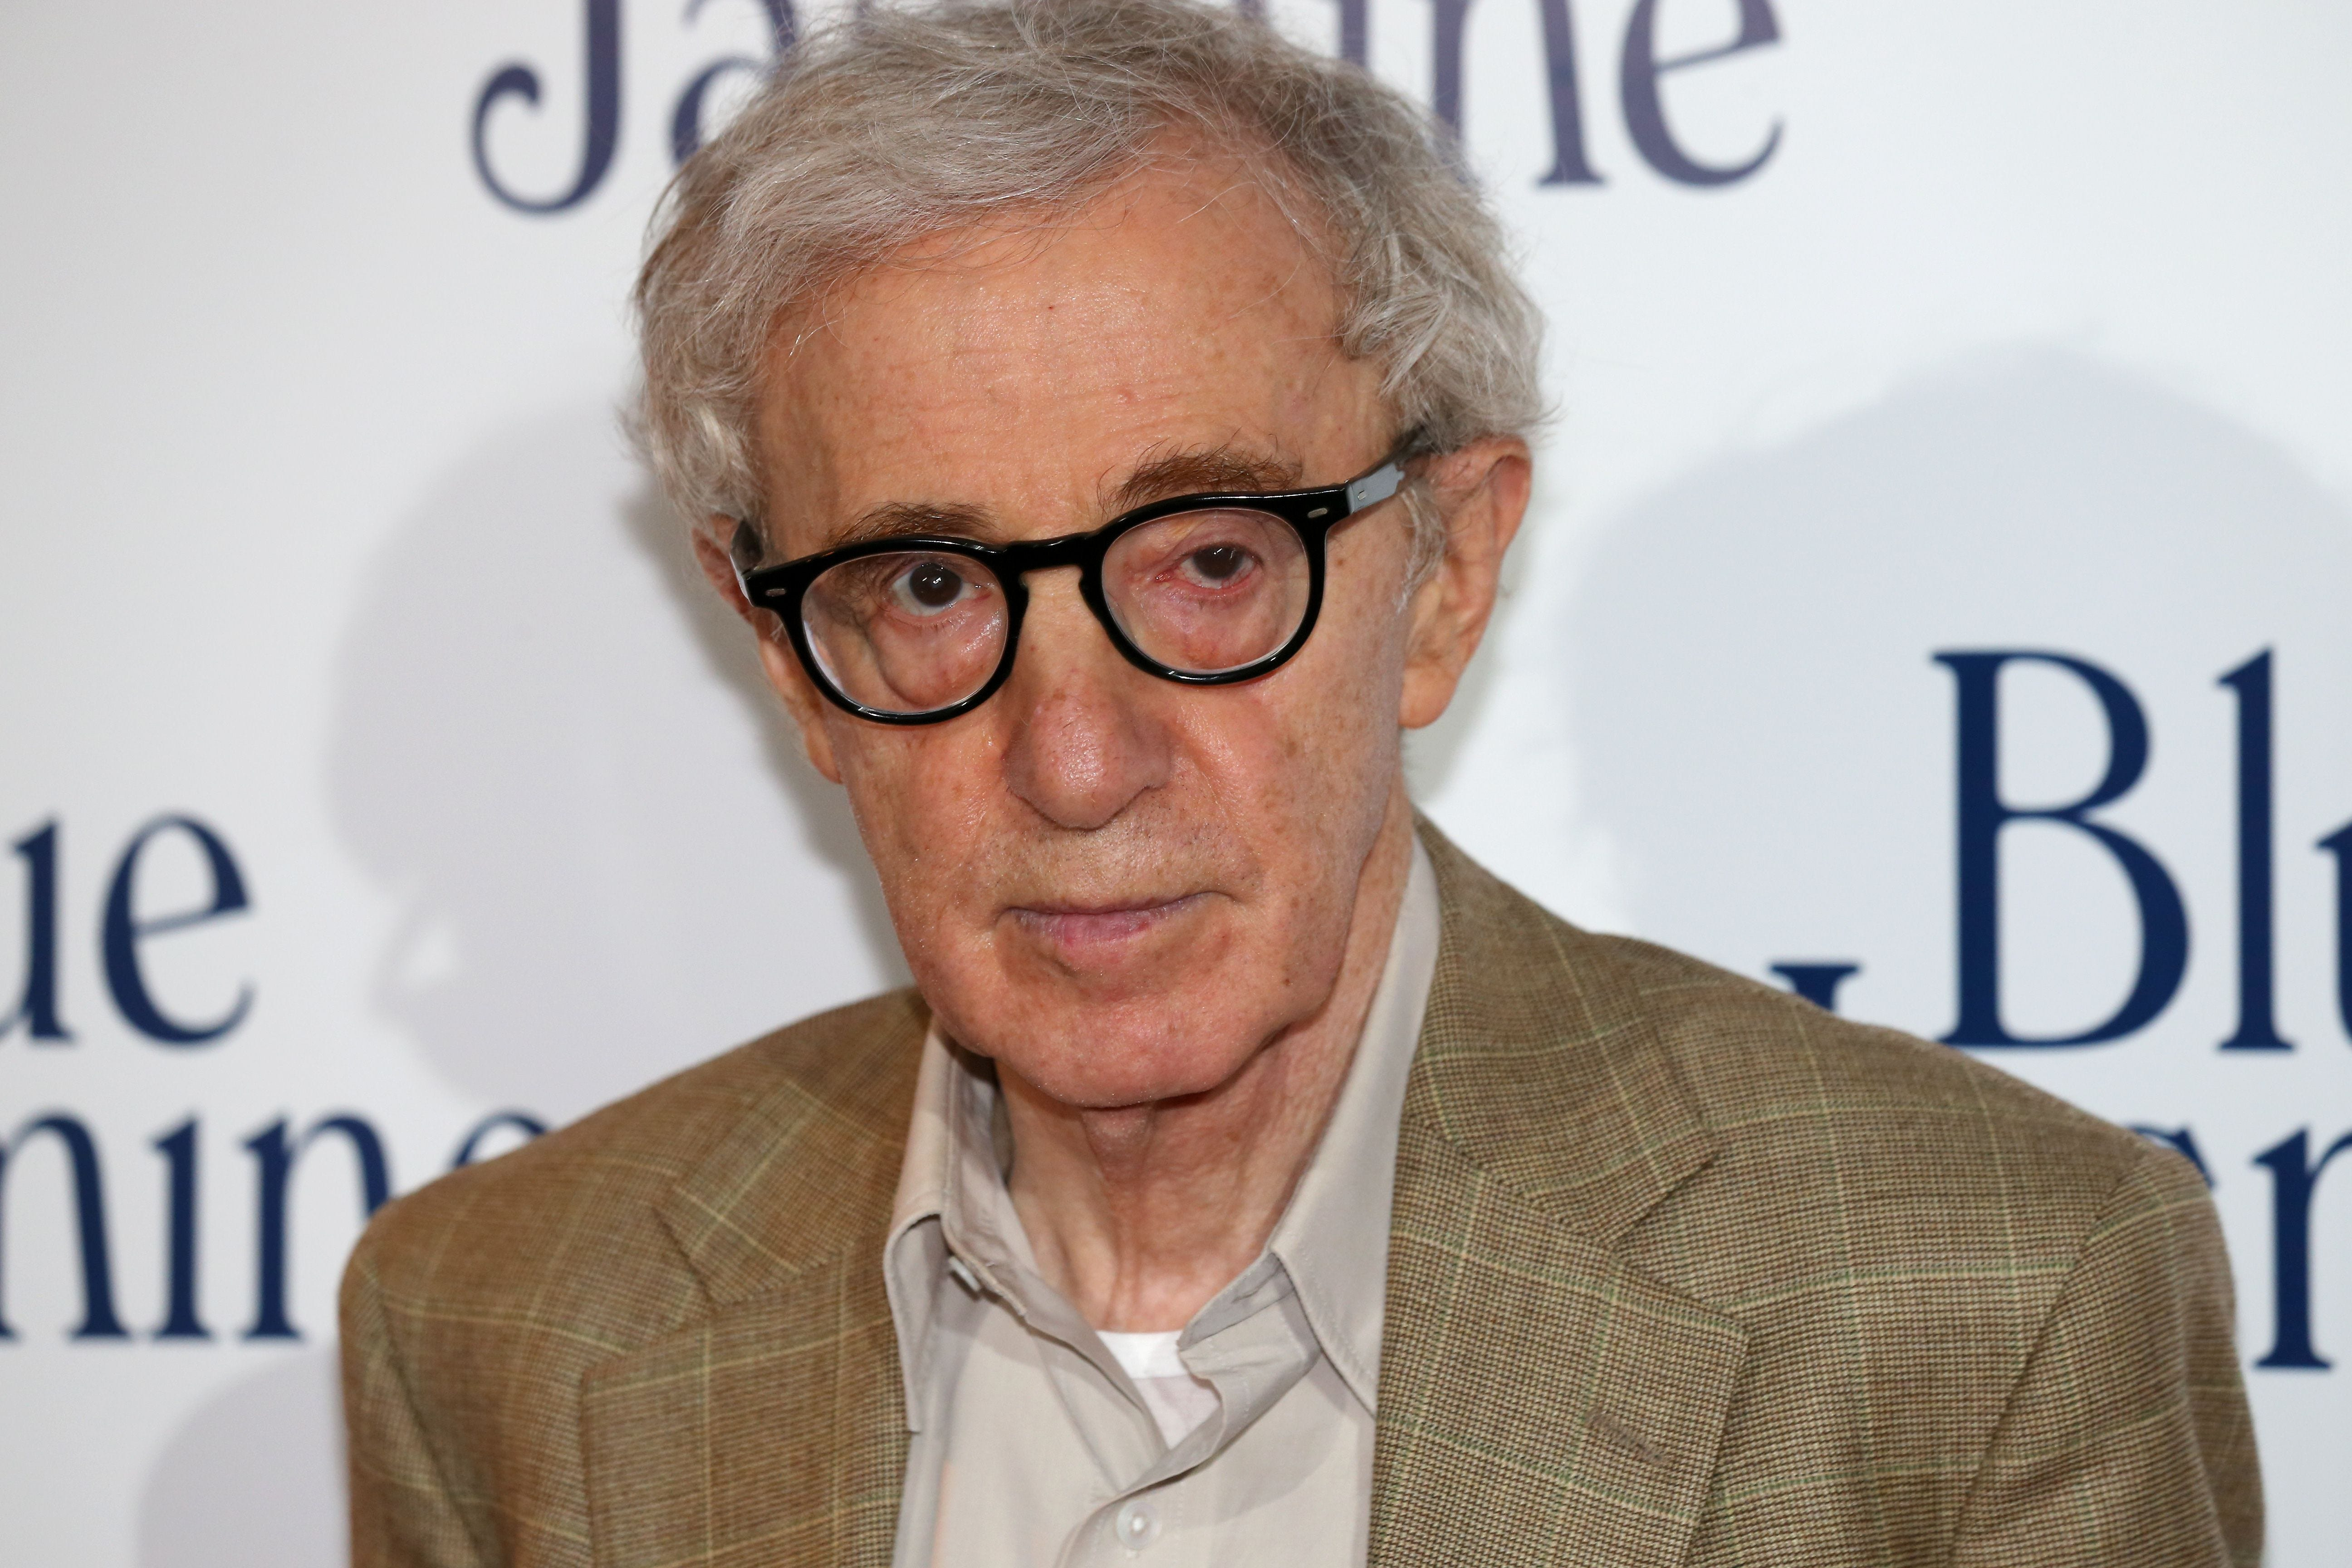 The problem with asking the public to cancel Woody Allen